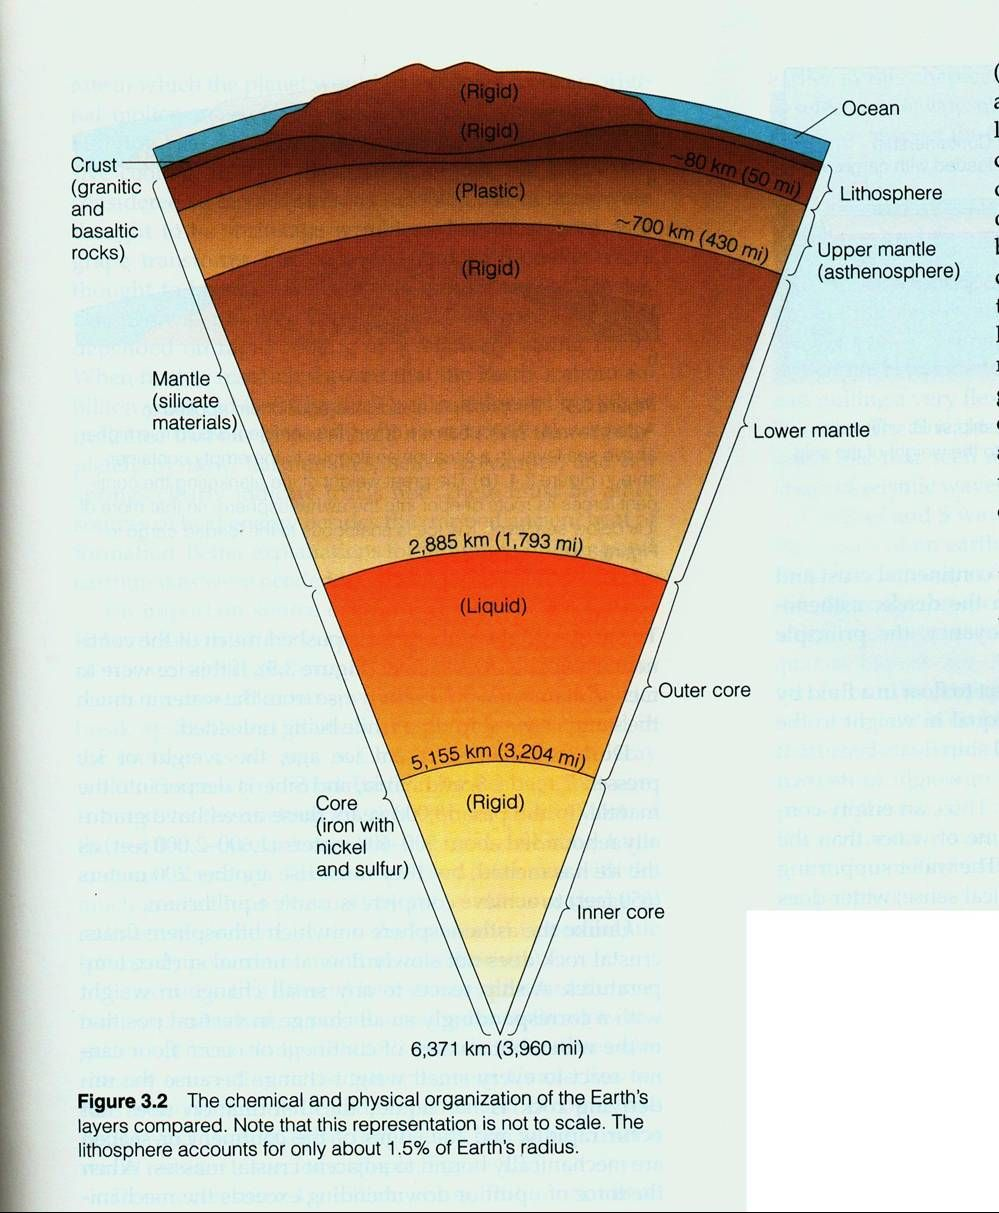 Interesting article on the Earth's Layers including discussion of density & the contrasting layers of other planets